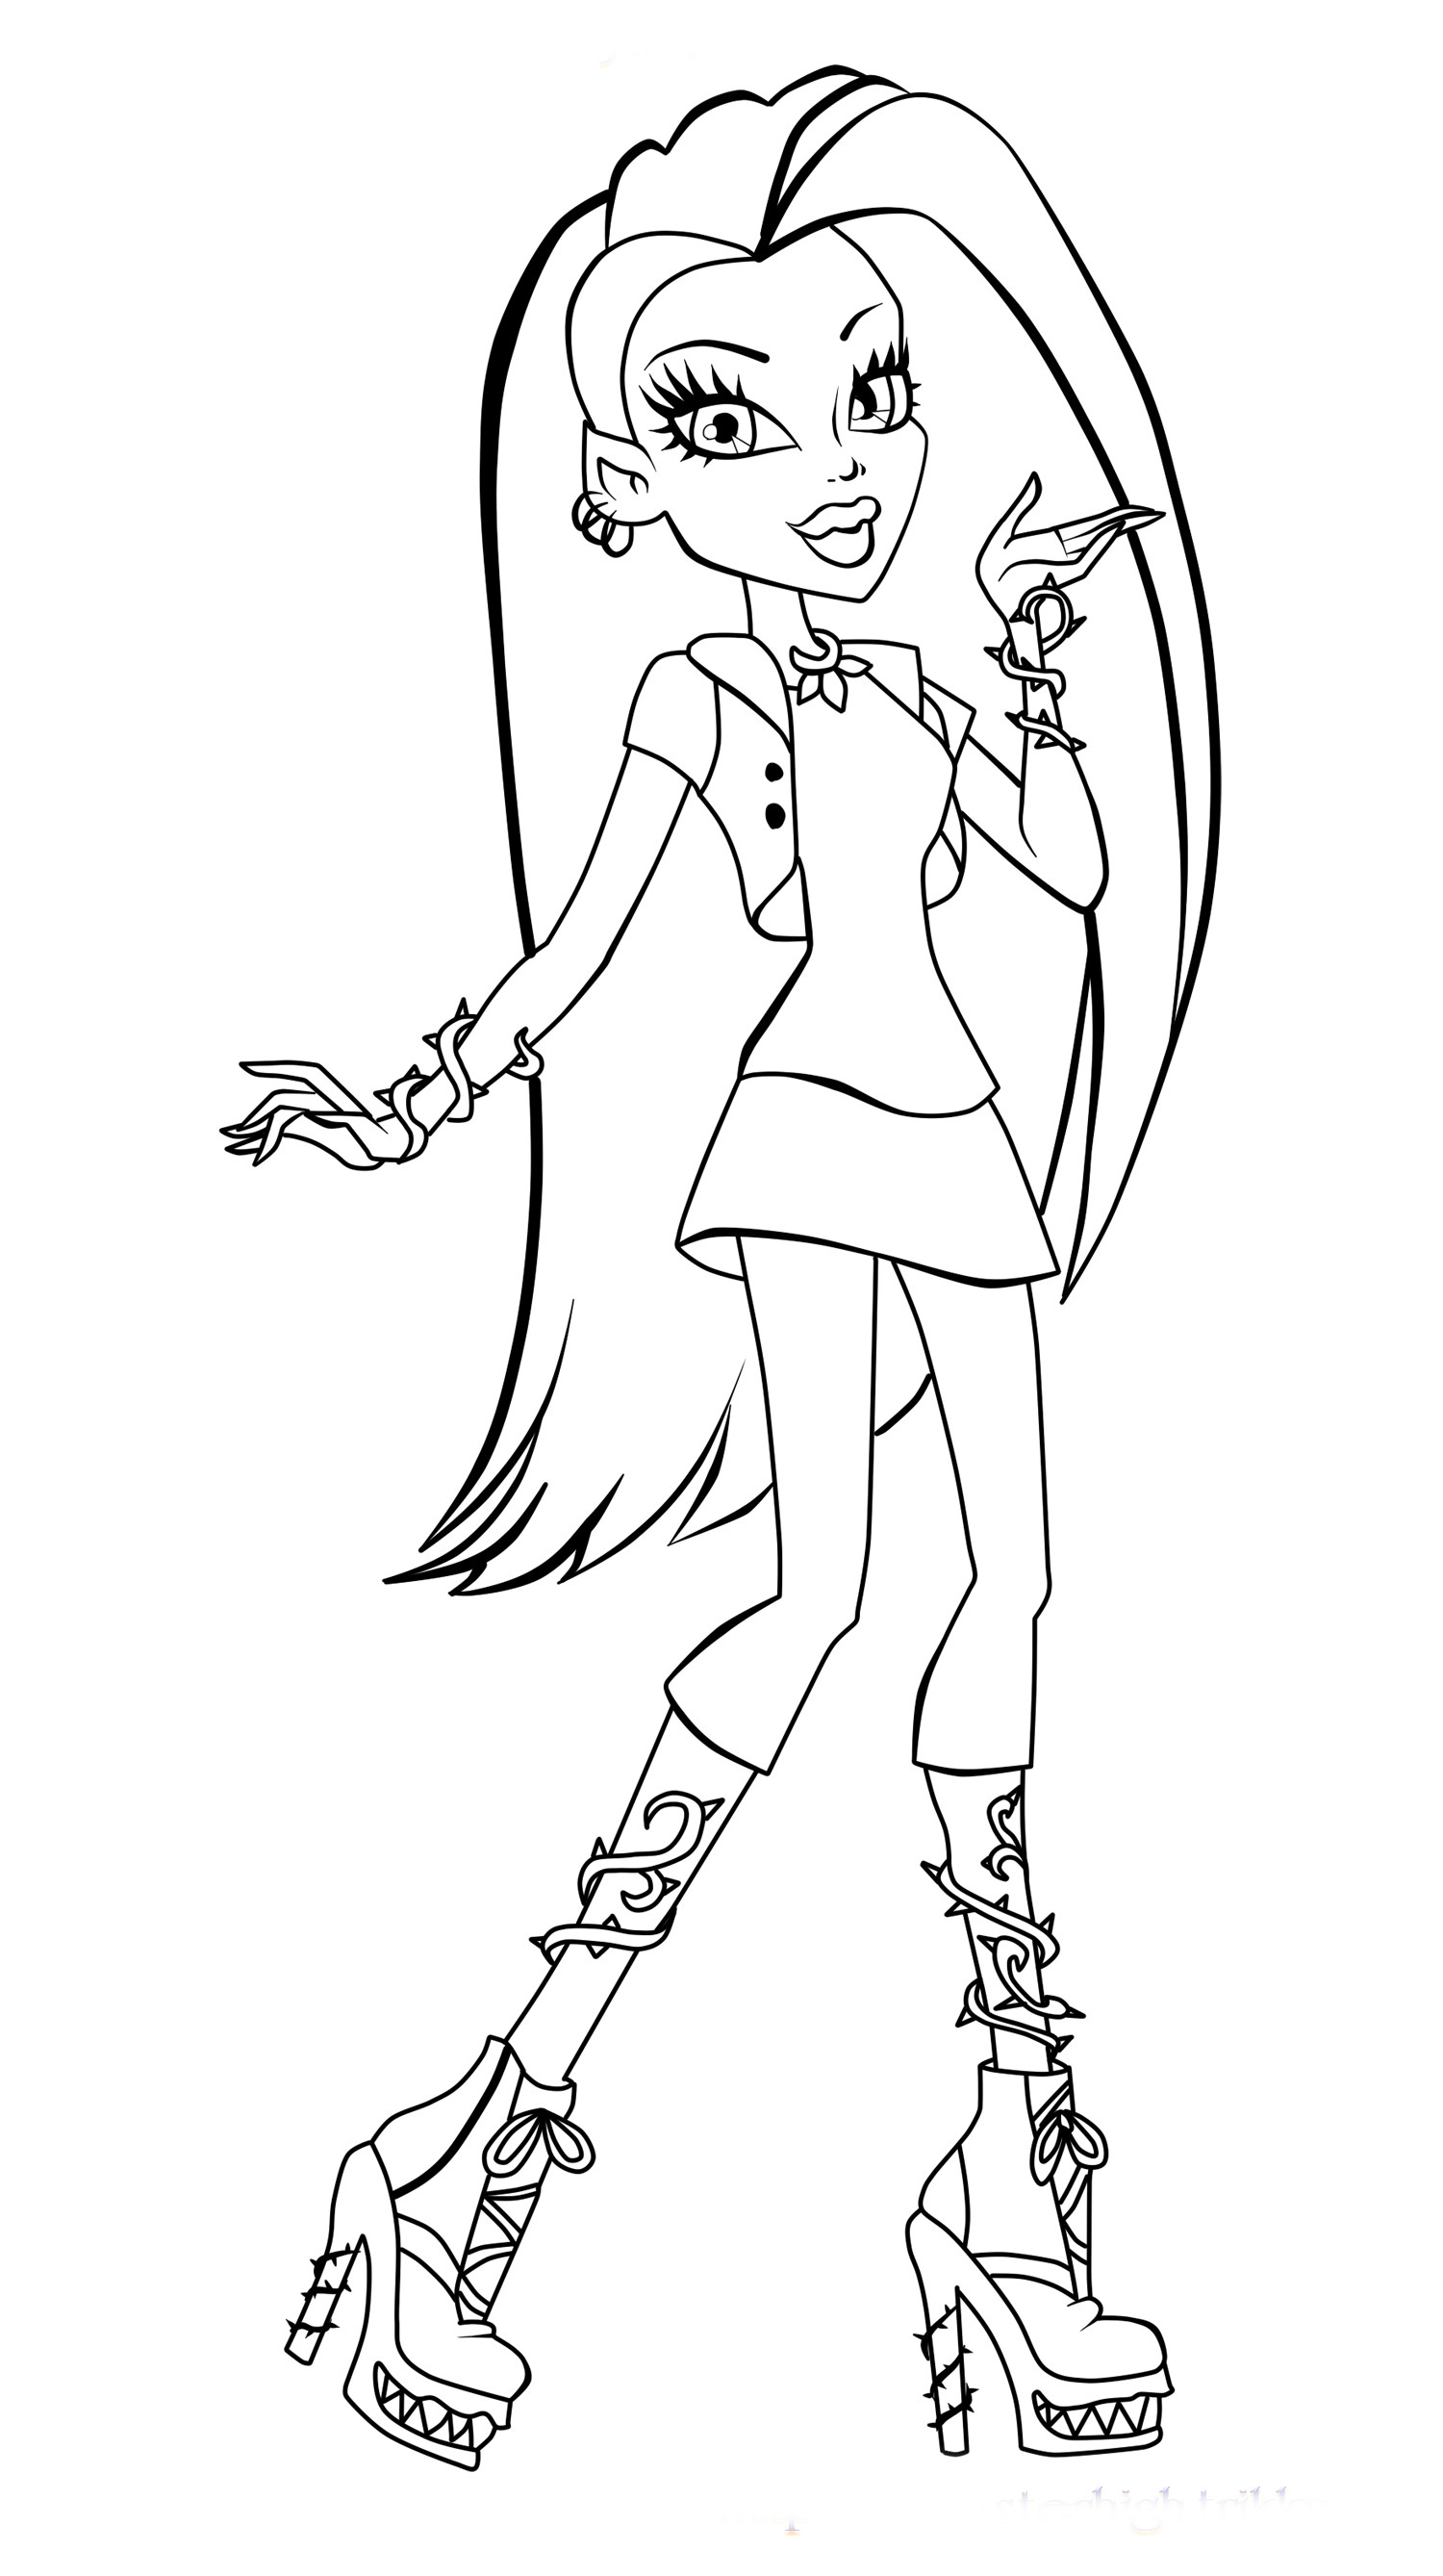 Monster High Printable Coloring Pages  Monster High Coloring Pages 2018 Z31 Coloring Page